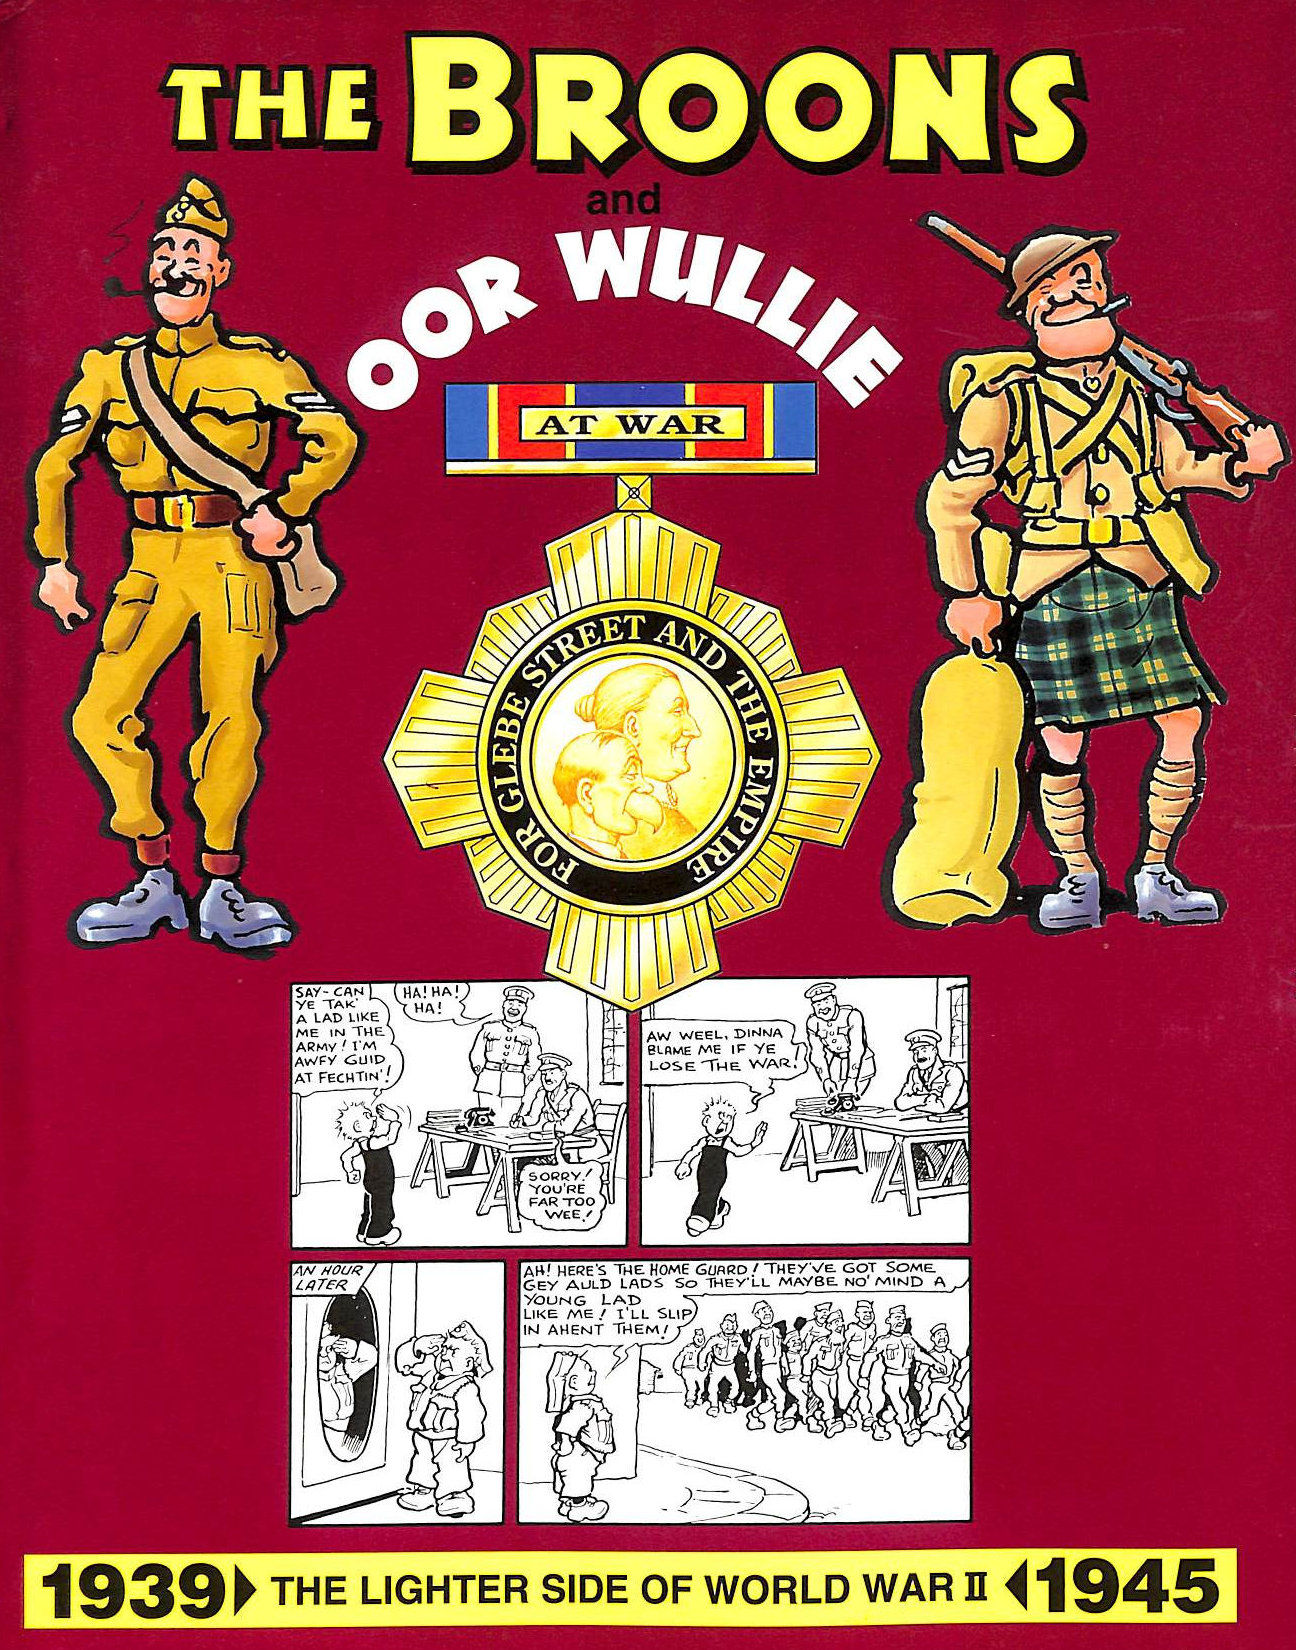 Image for The Broons and Oor Wullie: Lighter Side of World War II, 1939-45 v. 2 [The Broons and oor Wullie at War]